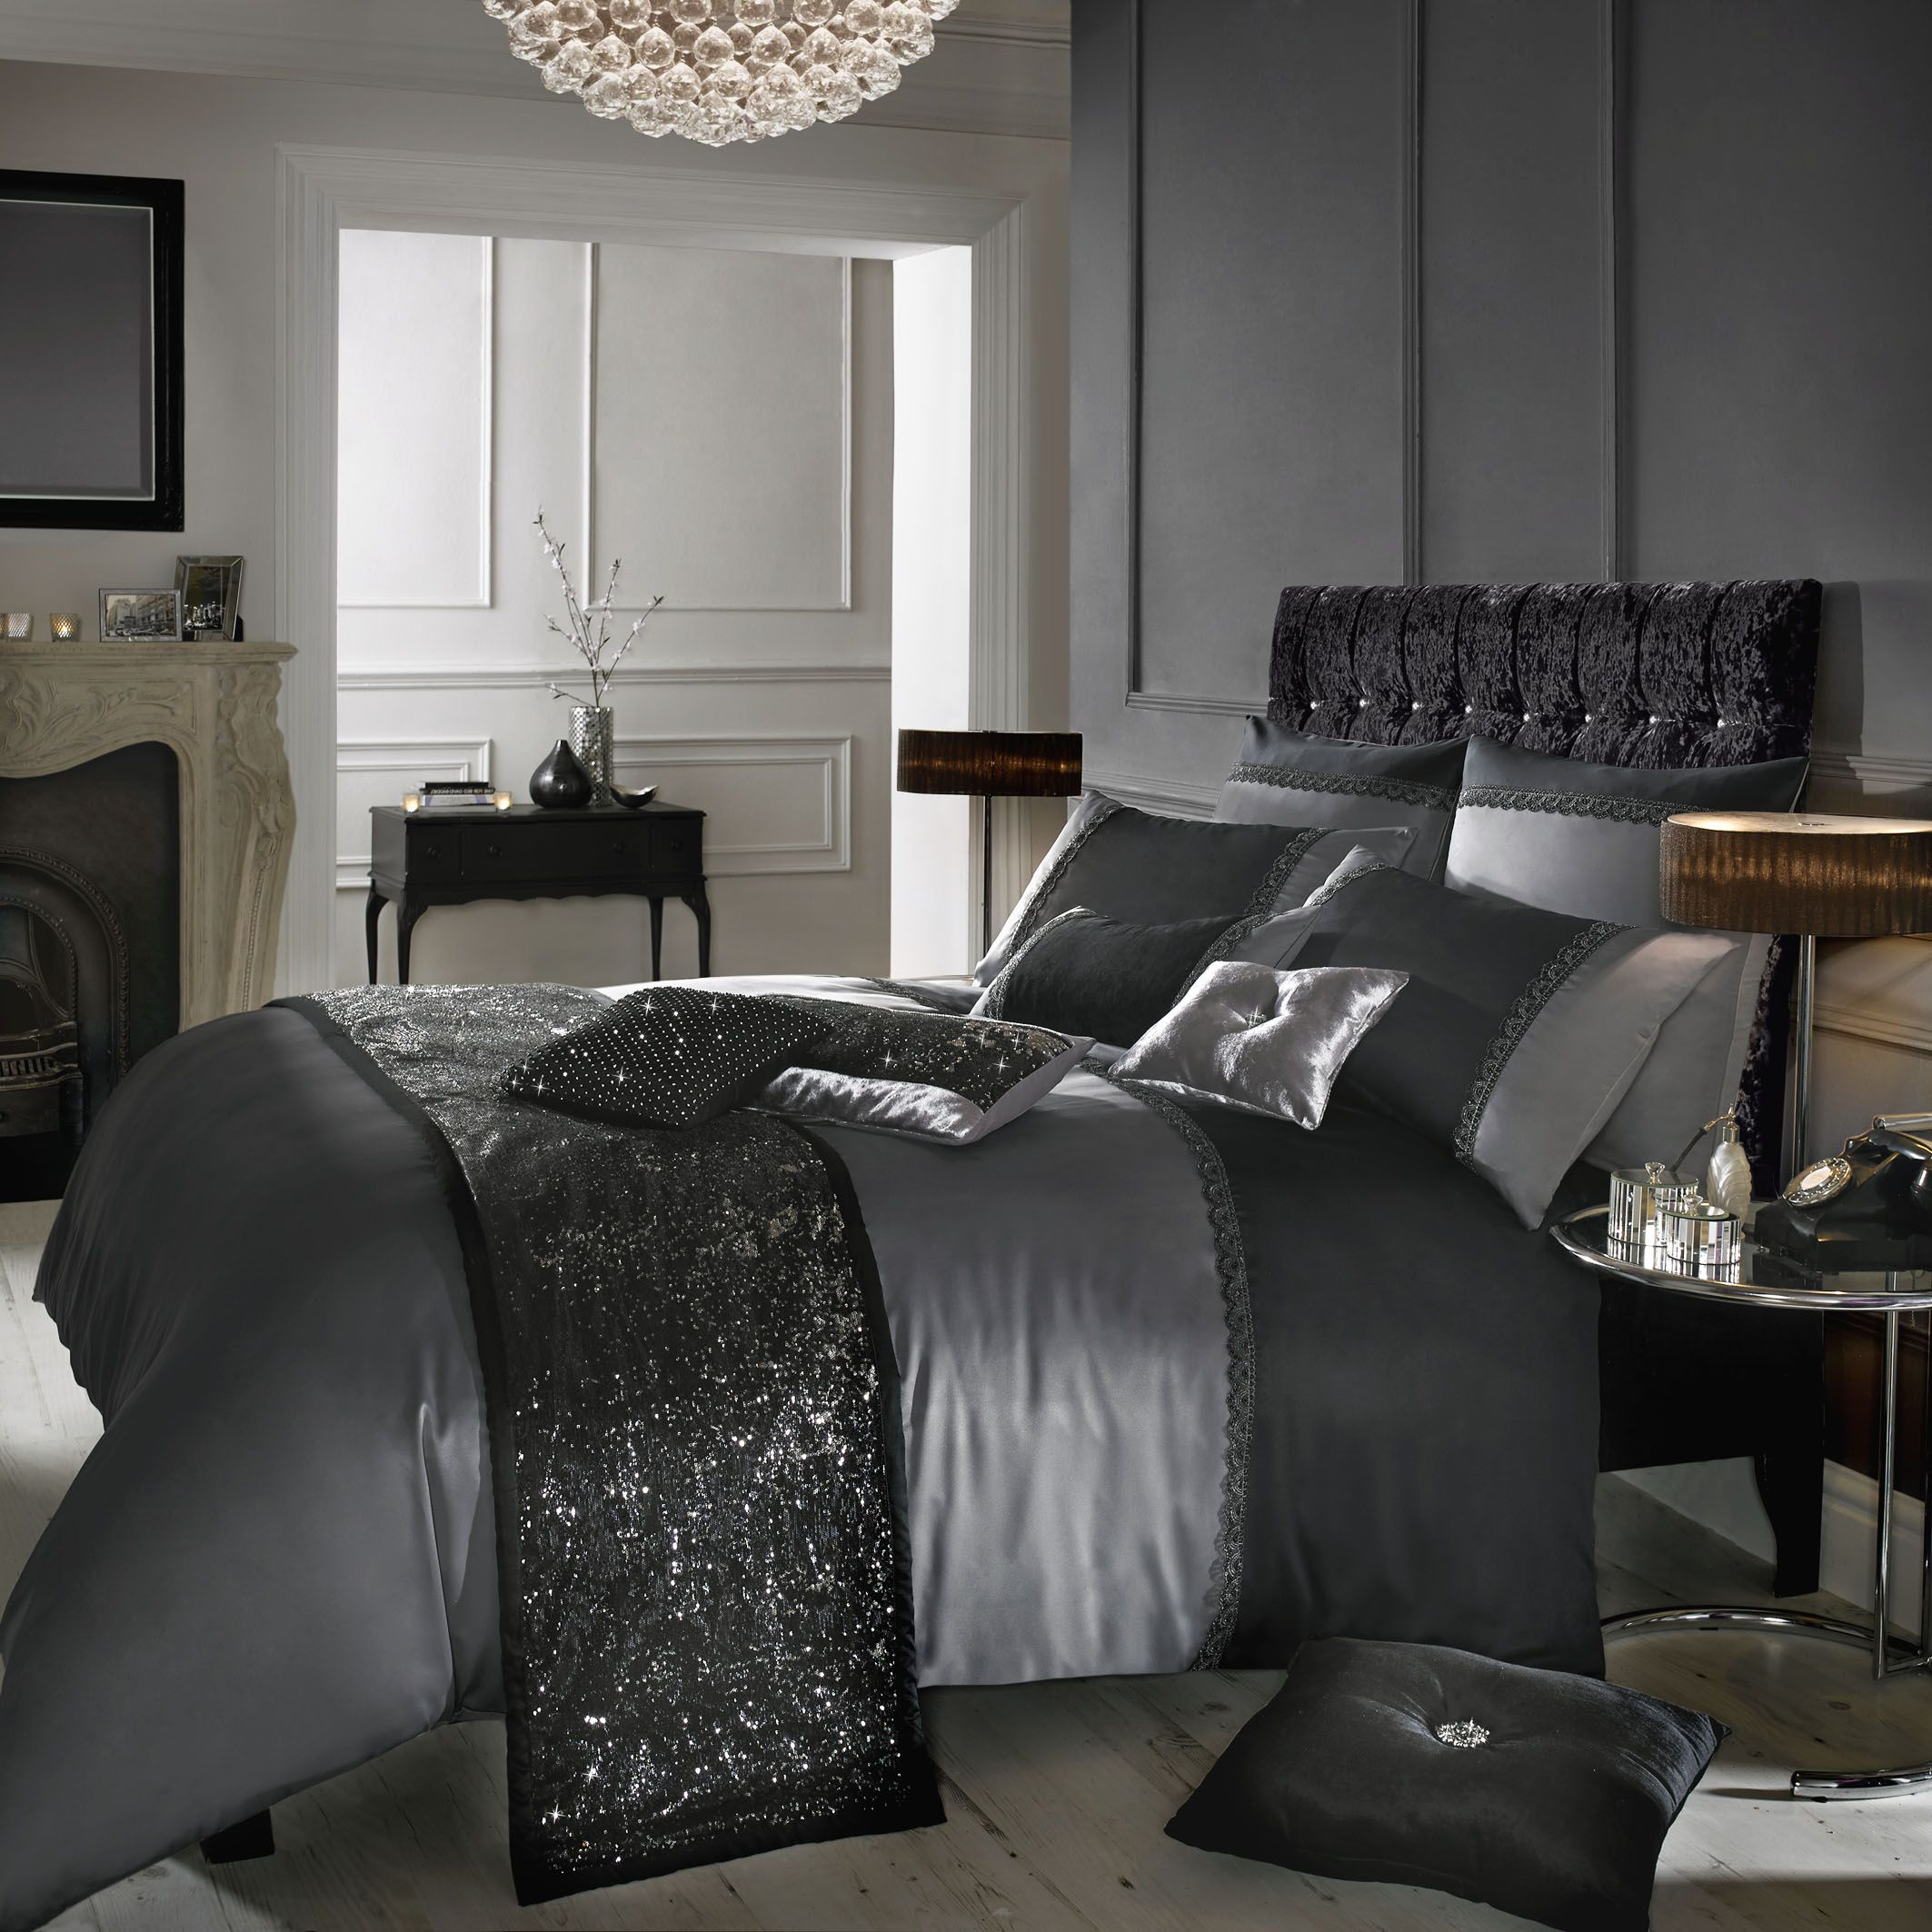 plus patterned comforters grey with bedroom bed sham iron lace and gray sleep also comforter cushion combined for comfortable astonishing accent frame black satin set on dark